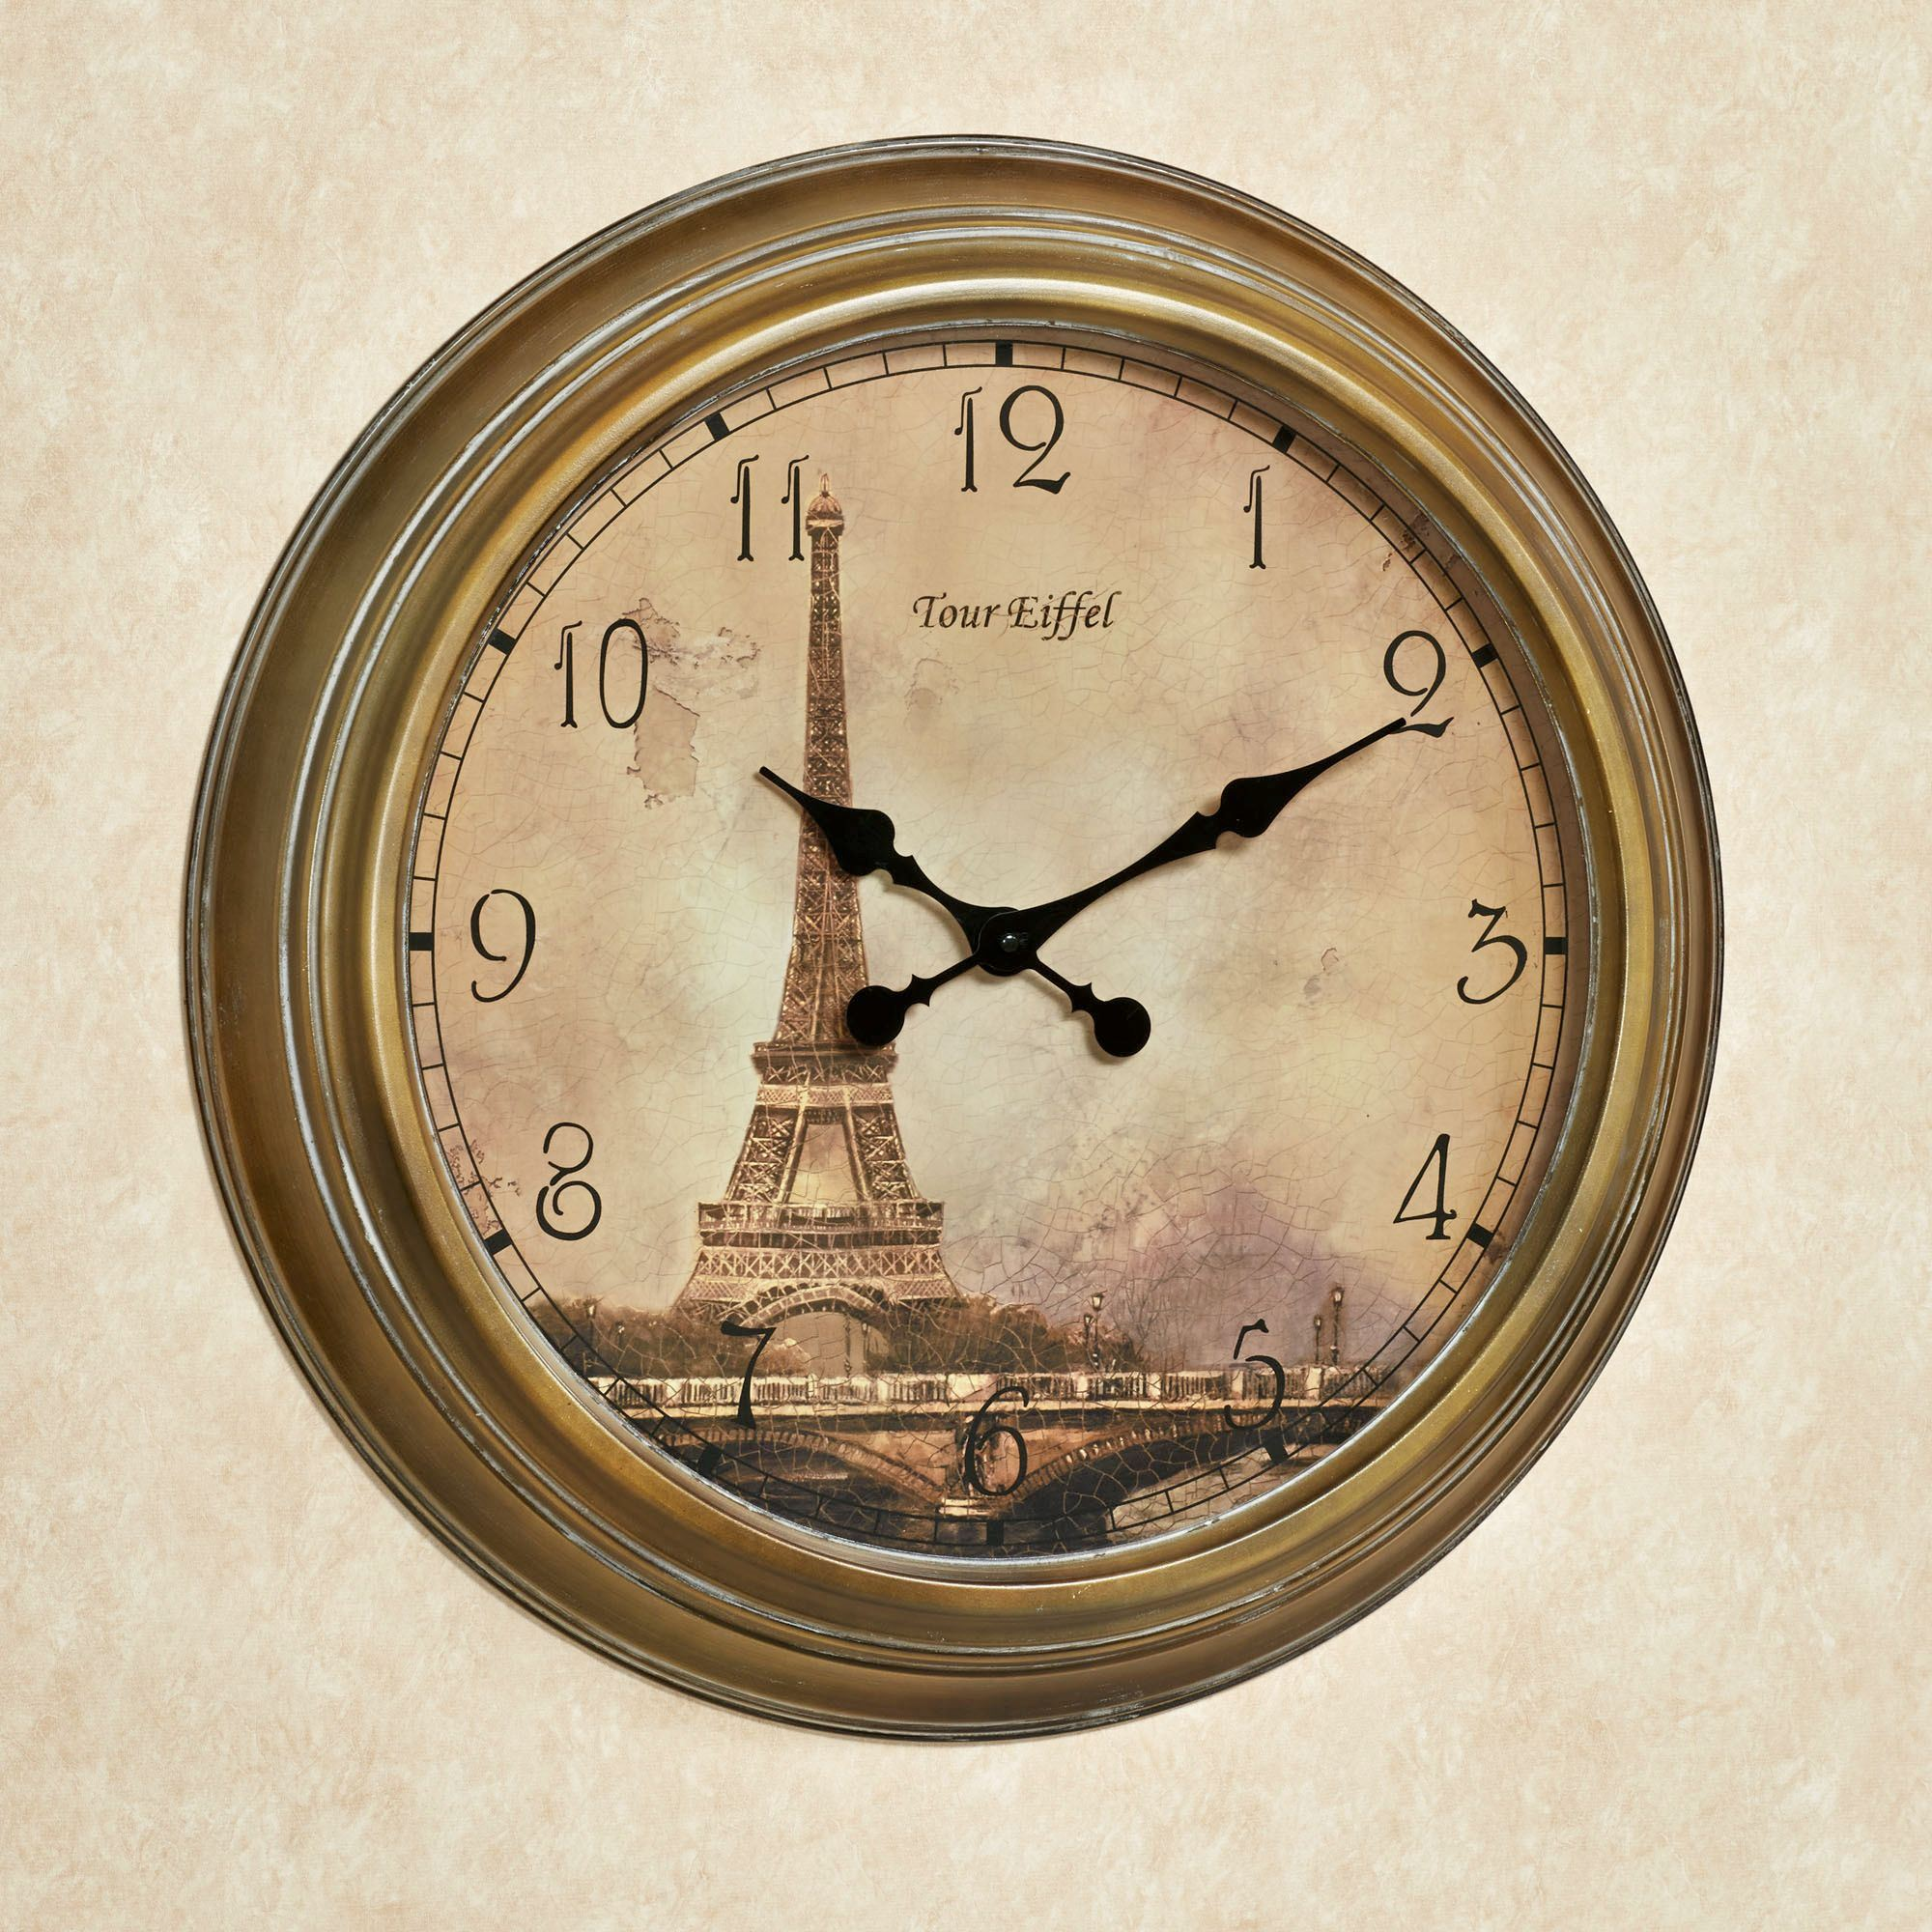 Monument de paris eiffel tower wall clock click to expand amipublicfo Gallery